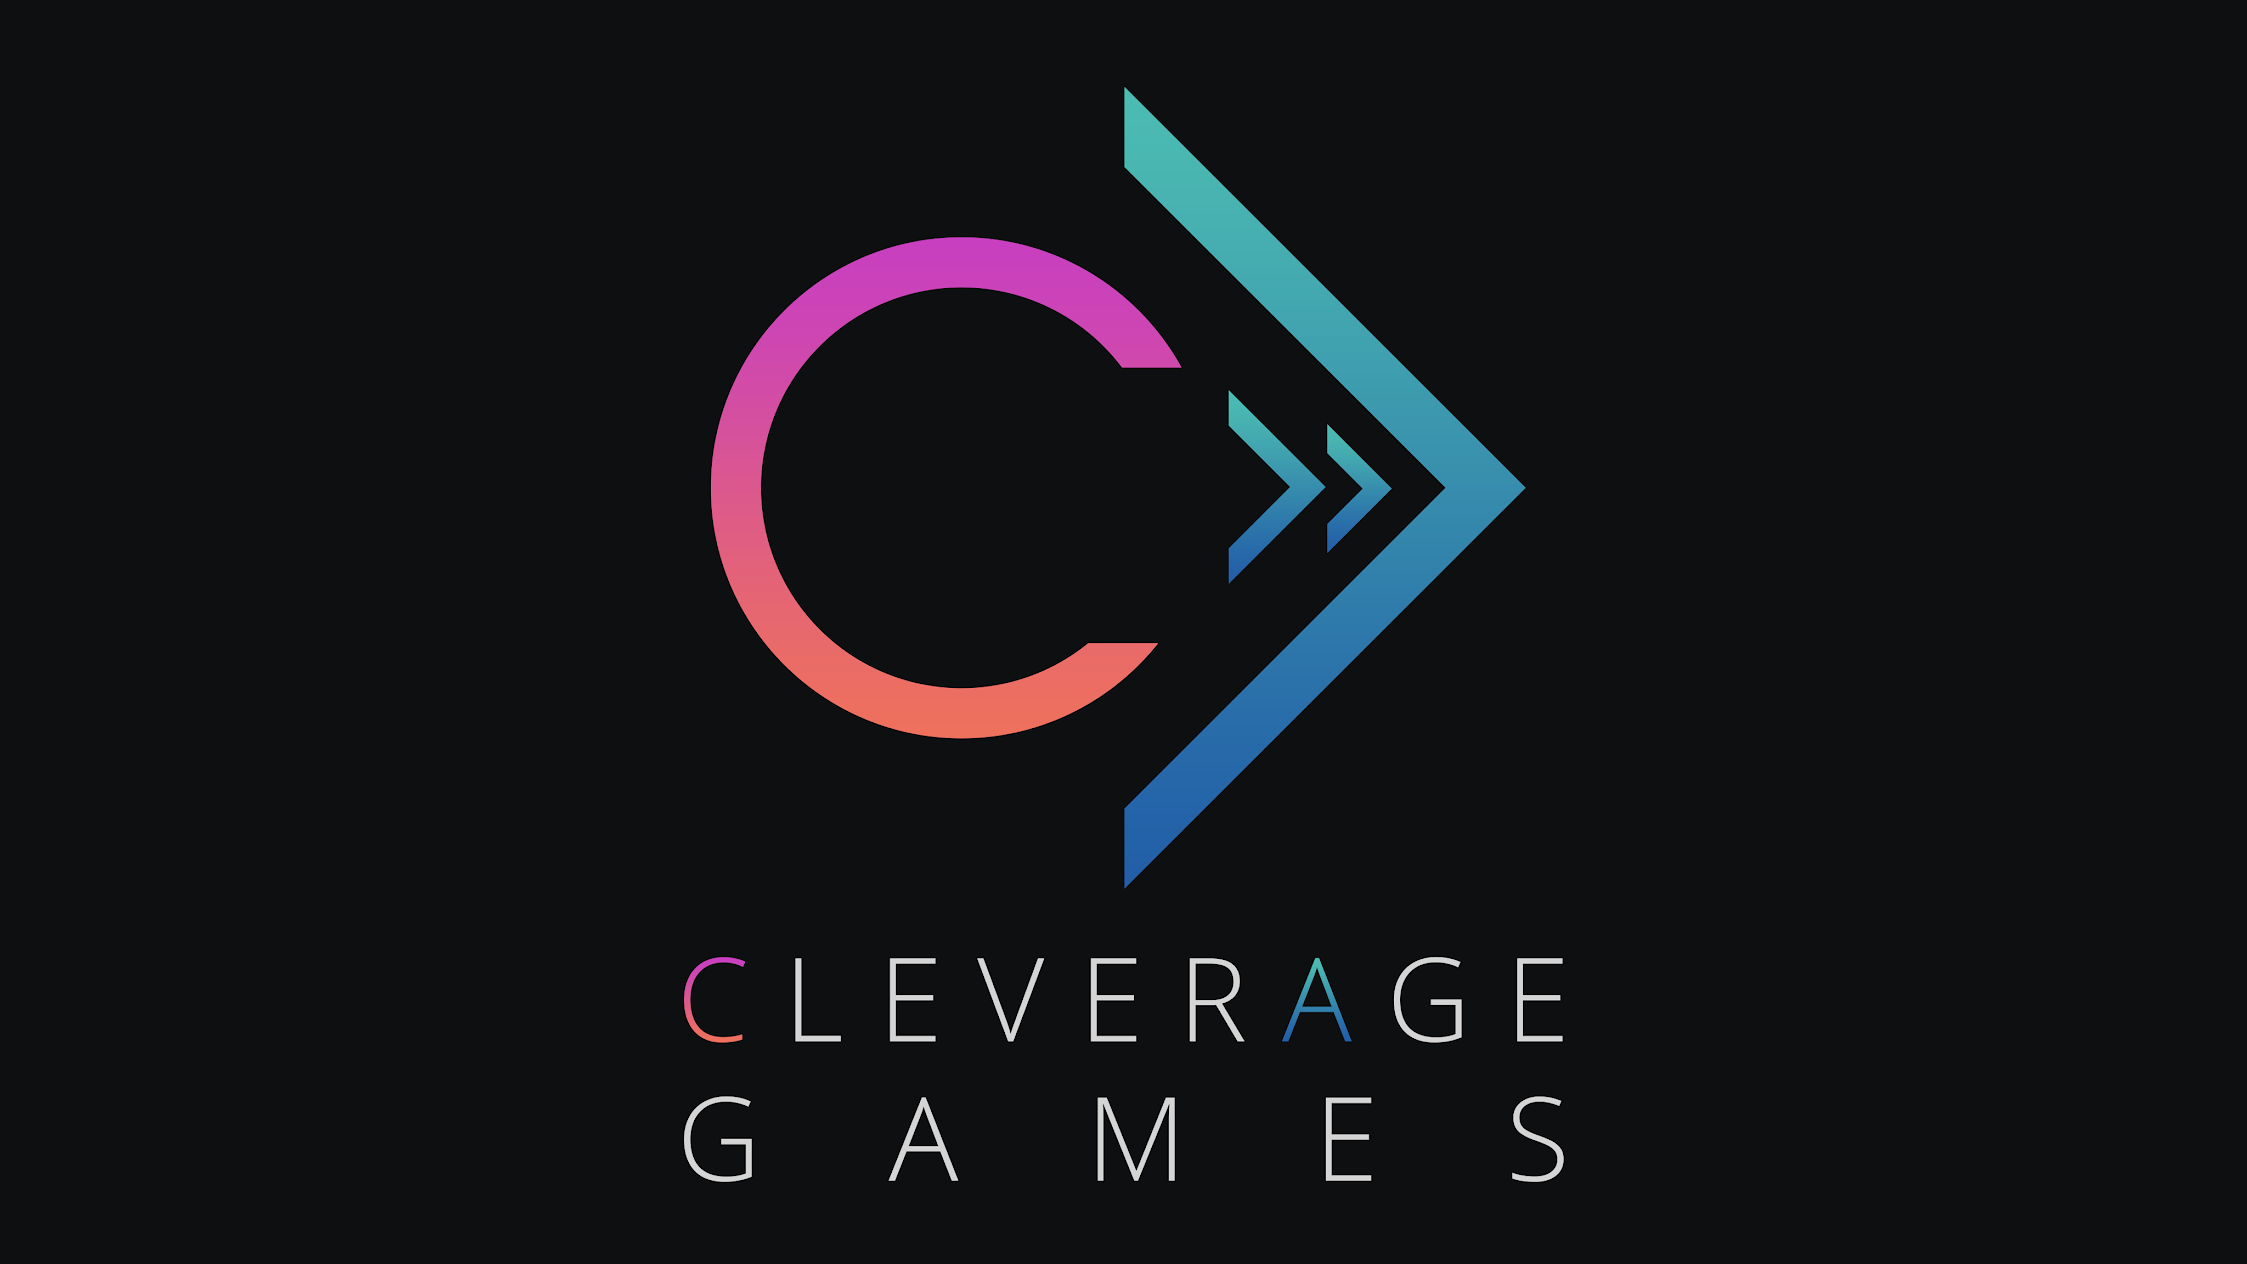 Cleverage Games